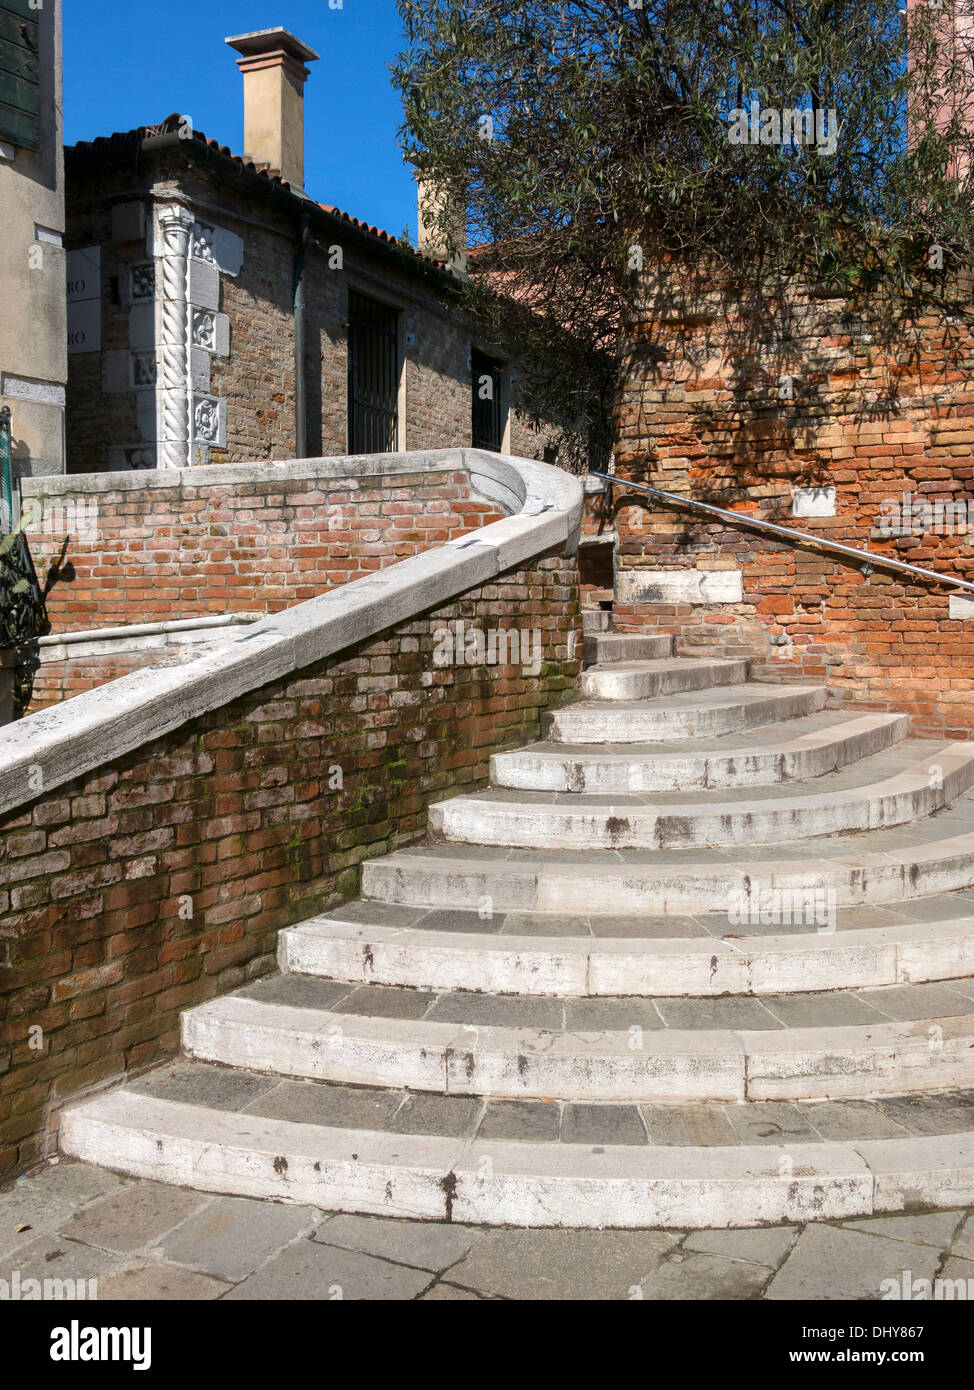 Curved concentric stone steps, walls and buildings, Venice, Italy - Stock Image